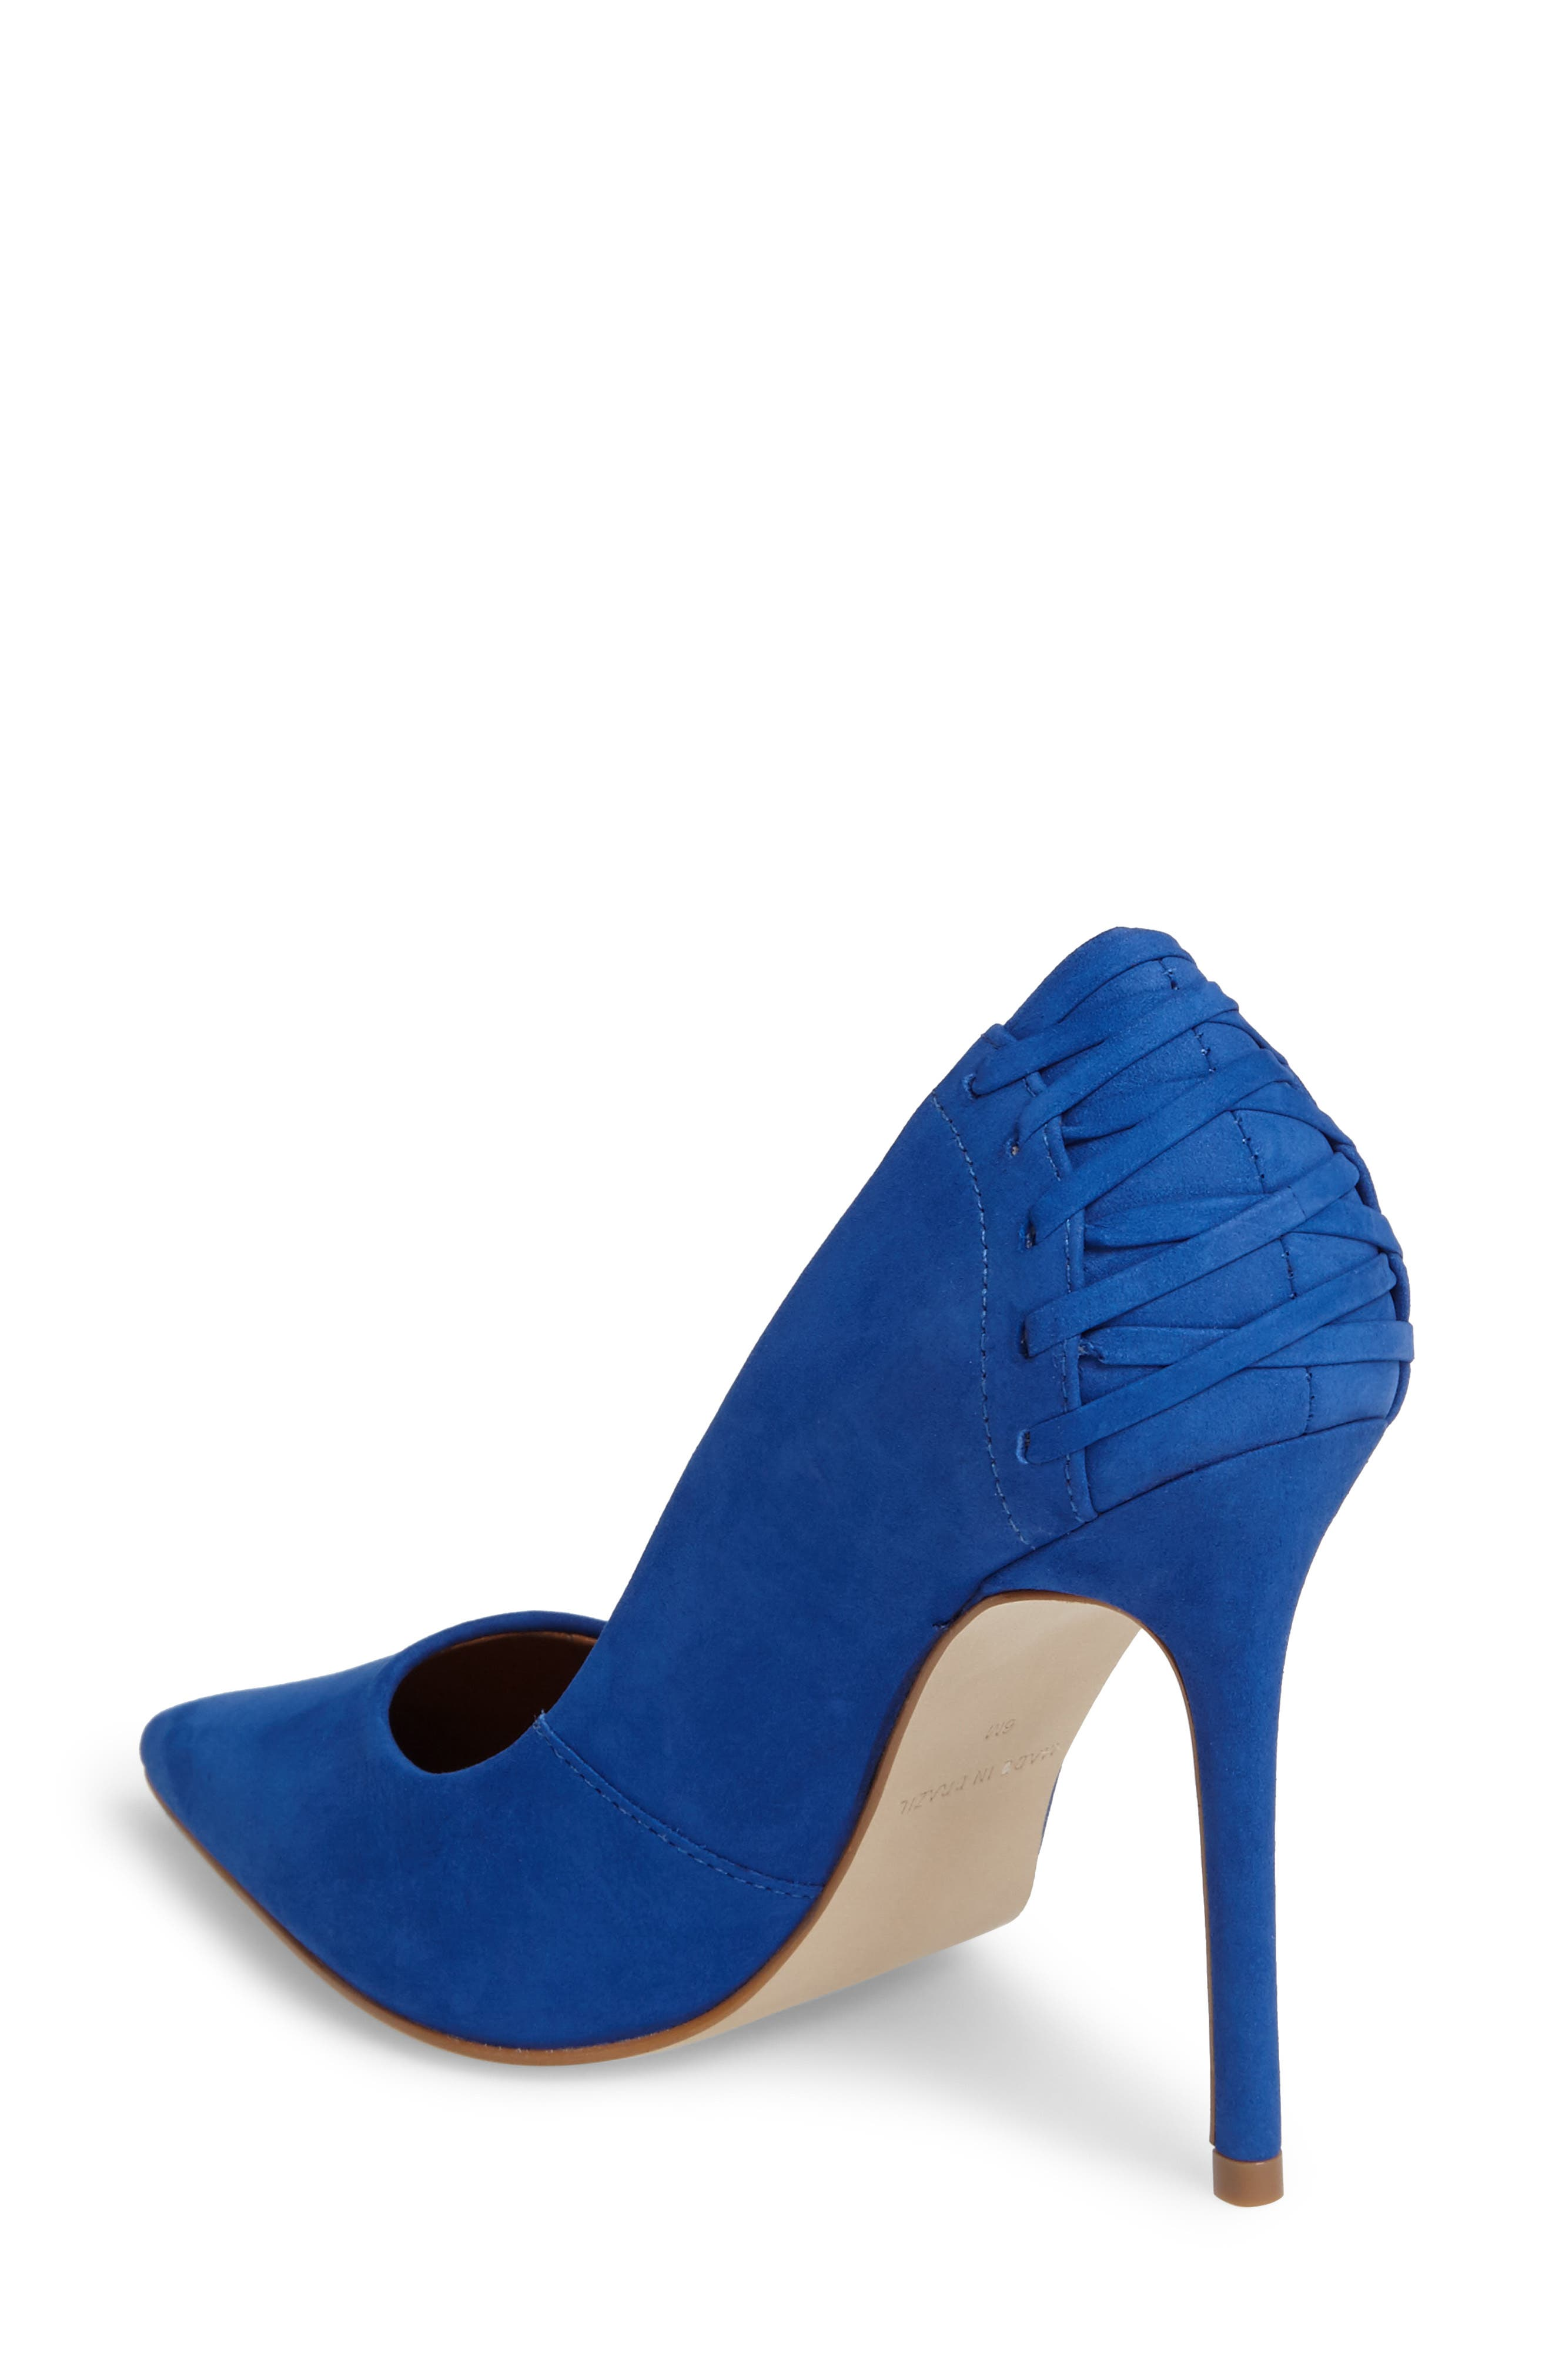 Paiton Laced Heel Pump,                             Alternate thumbnail 2, color,                             Blue Nubuck